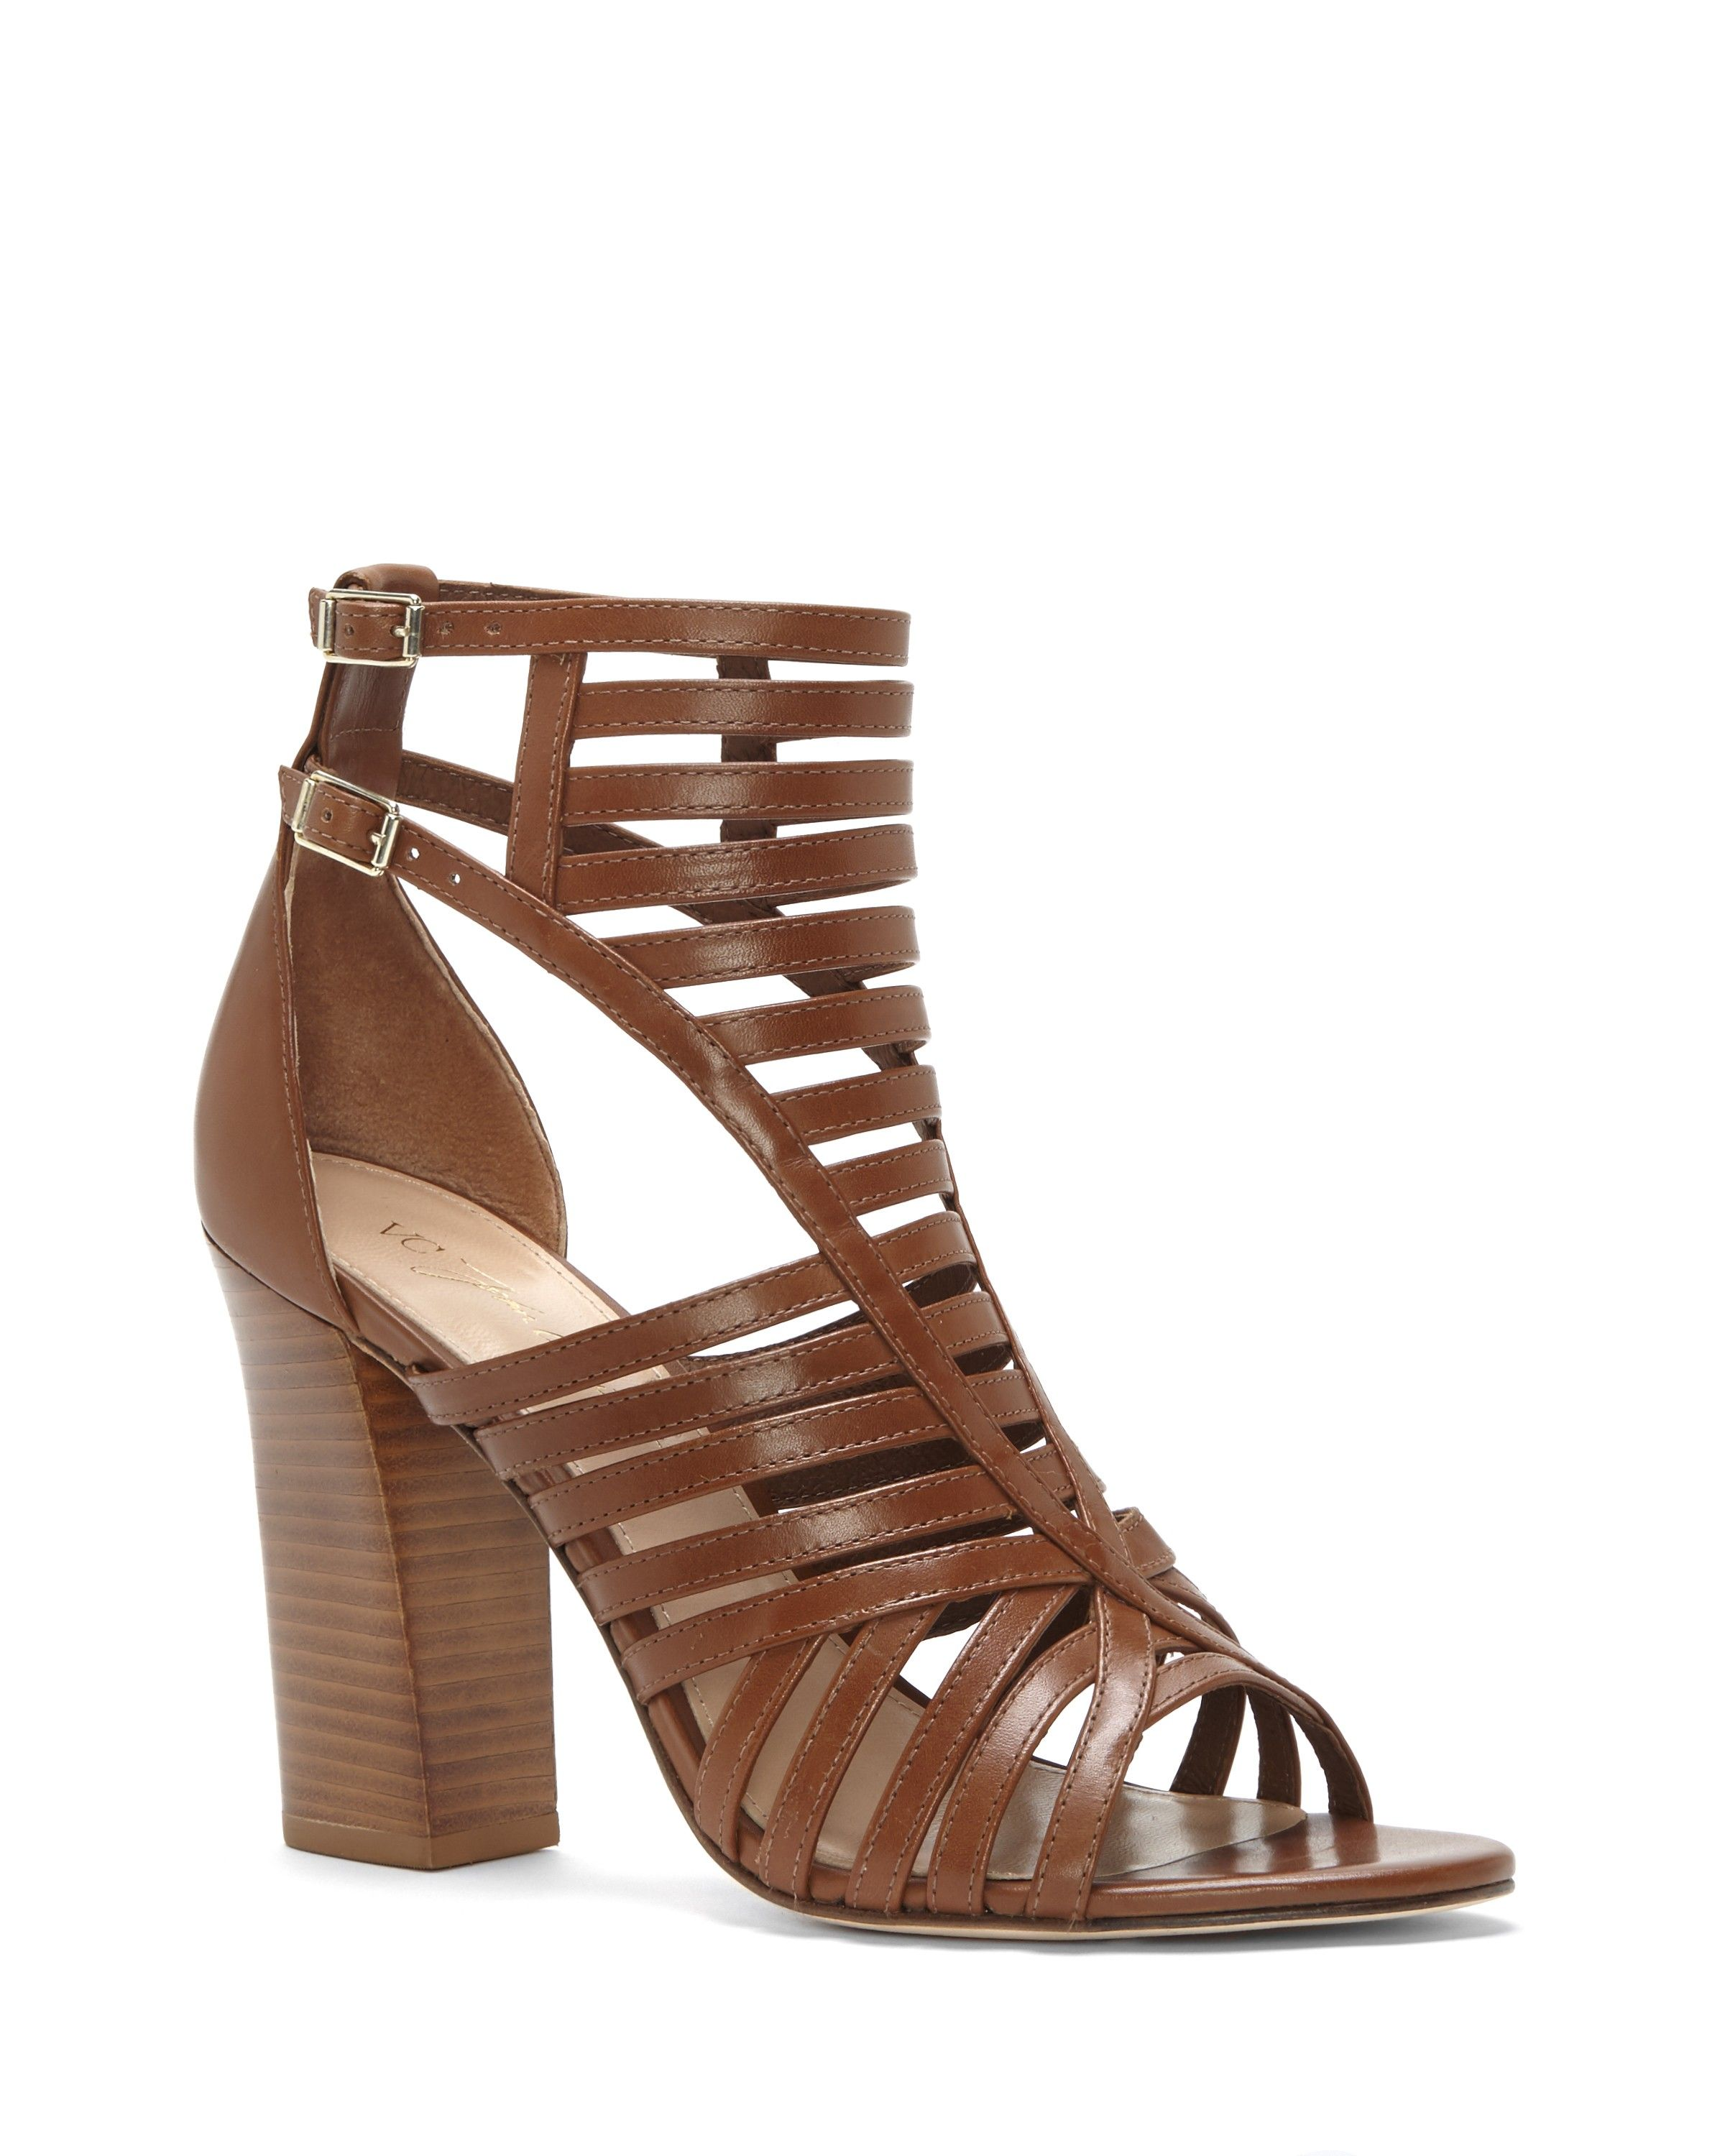 2f7ad9fdd58a VINCE CAMUTO VC John Camuto Bess – Strappy Block-heel Sandal.  vincecamuto   shoes